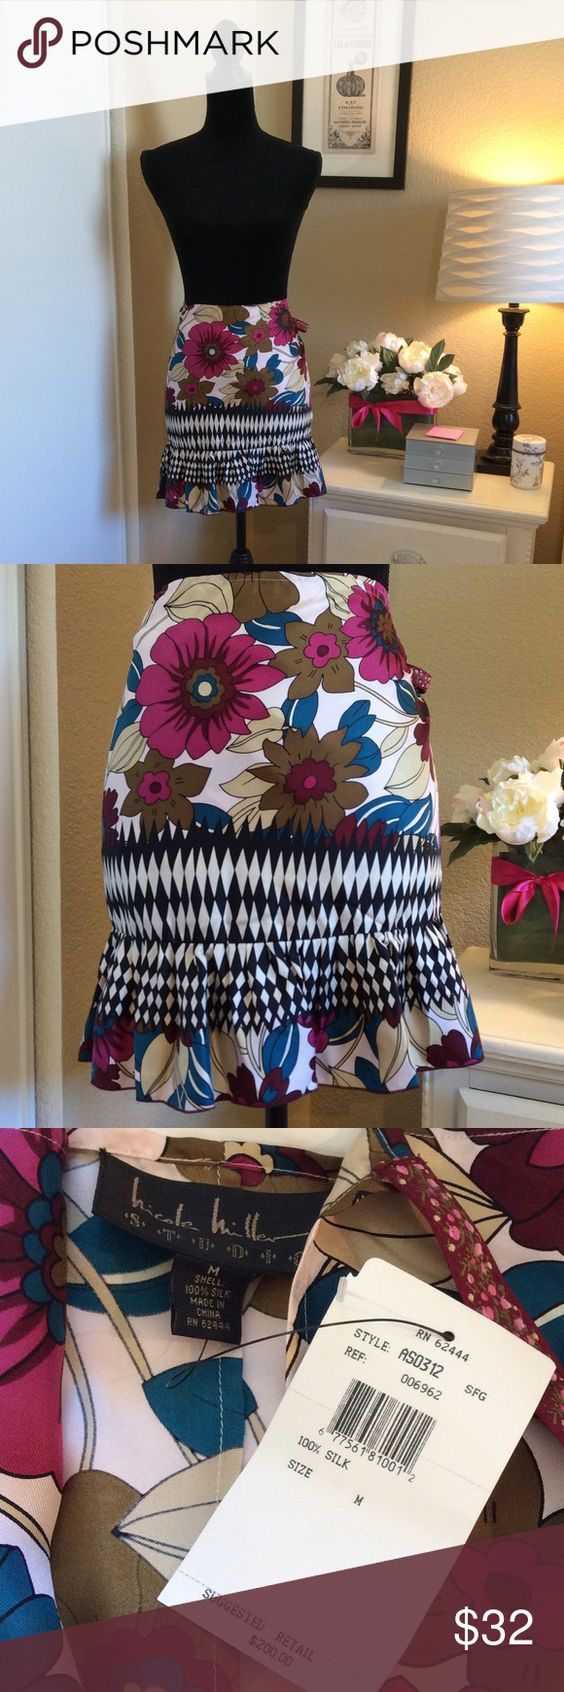 Nicole Miller Studio 100% Silk Wrap Skirt Brand New With Tags    Suggested Retail Price: $200  From the Nicole Miller Studio Line   100% Silk   Wrap Style   Slight ruffle along hemline adds an extra feminine touch. 🎀 Nicole Miller Skirts